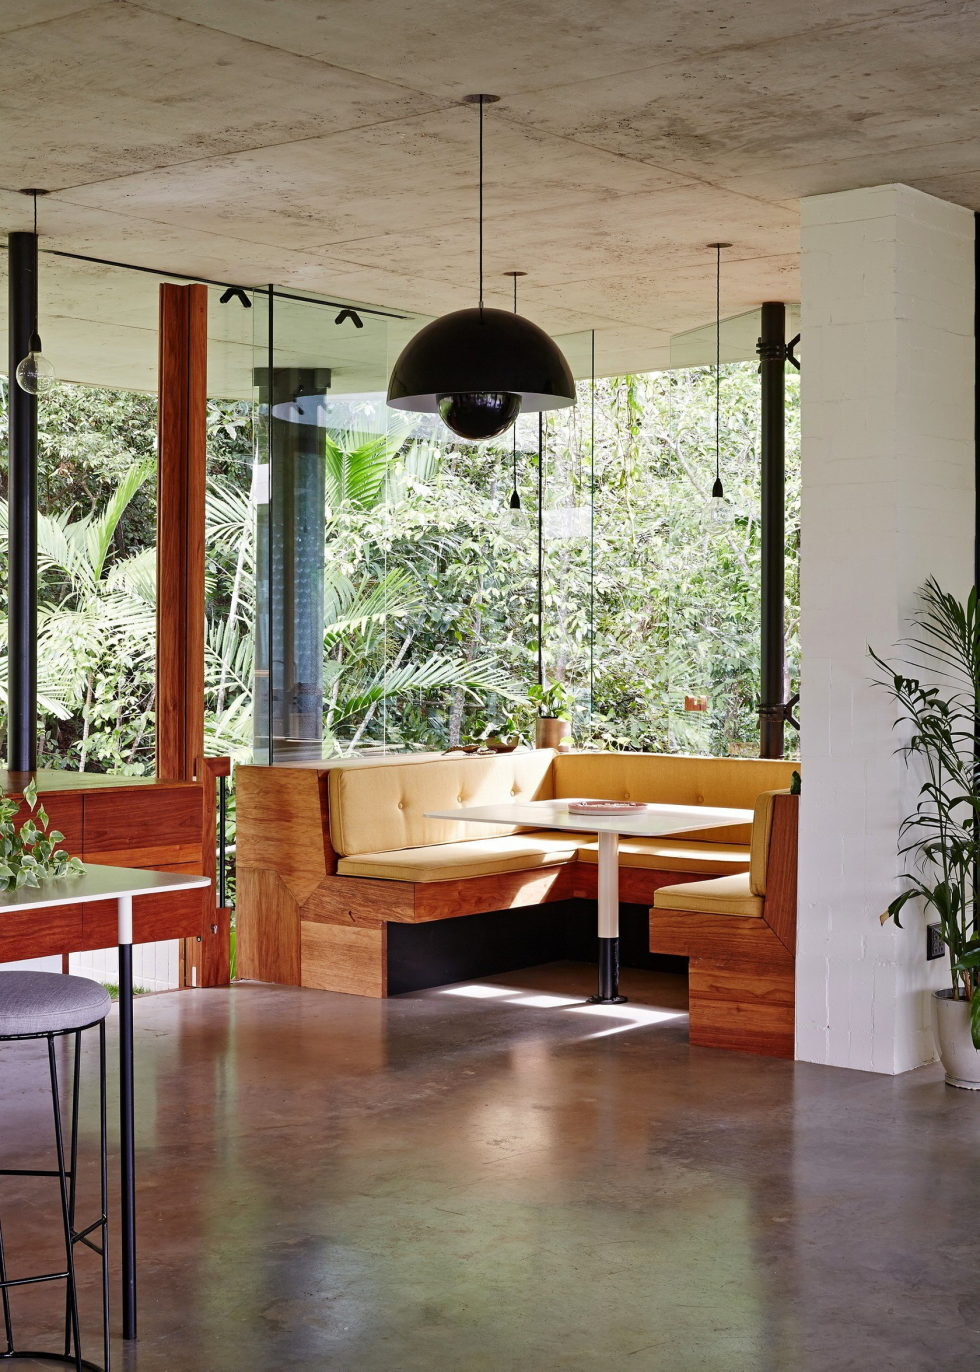 The glass house Planchonella in the tropical forest from Jesse Bennett Architect 8